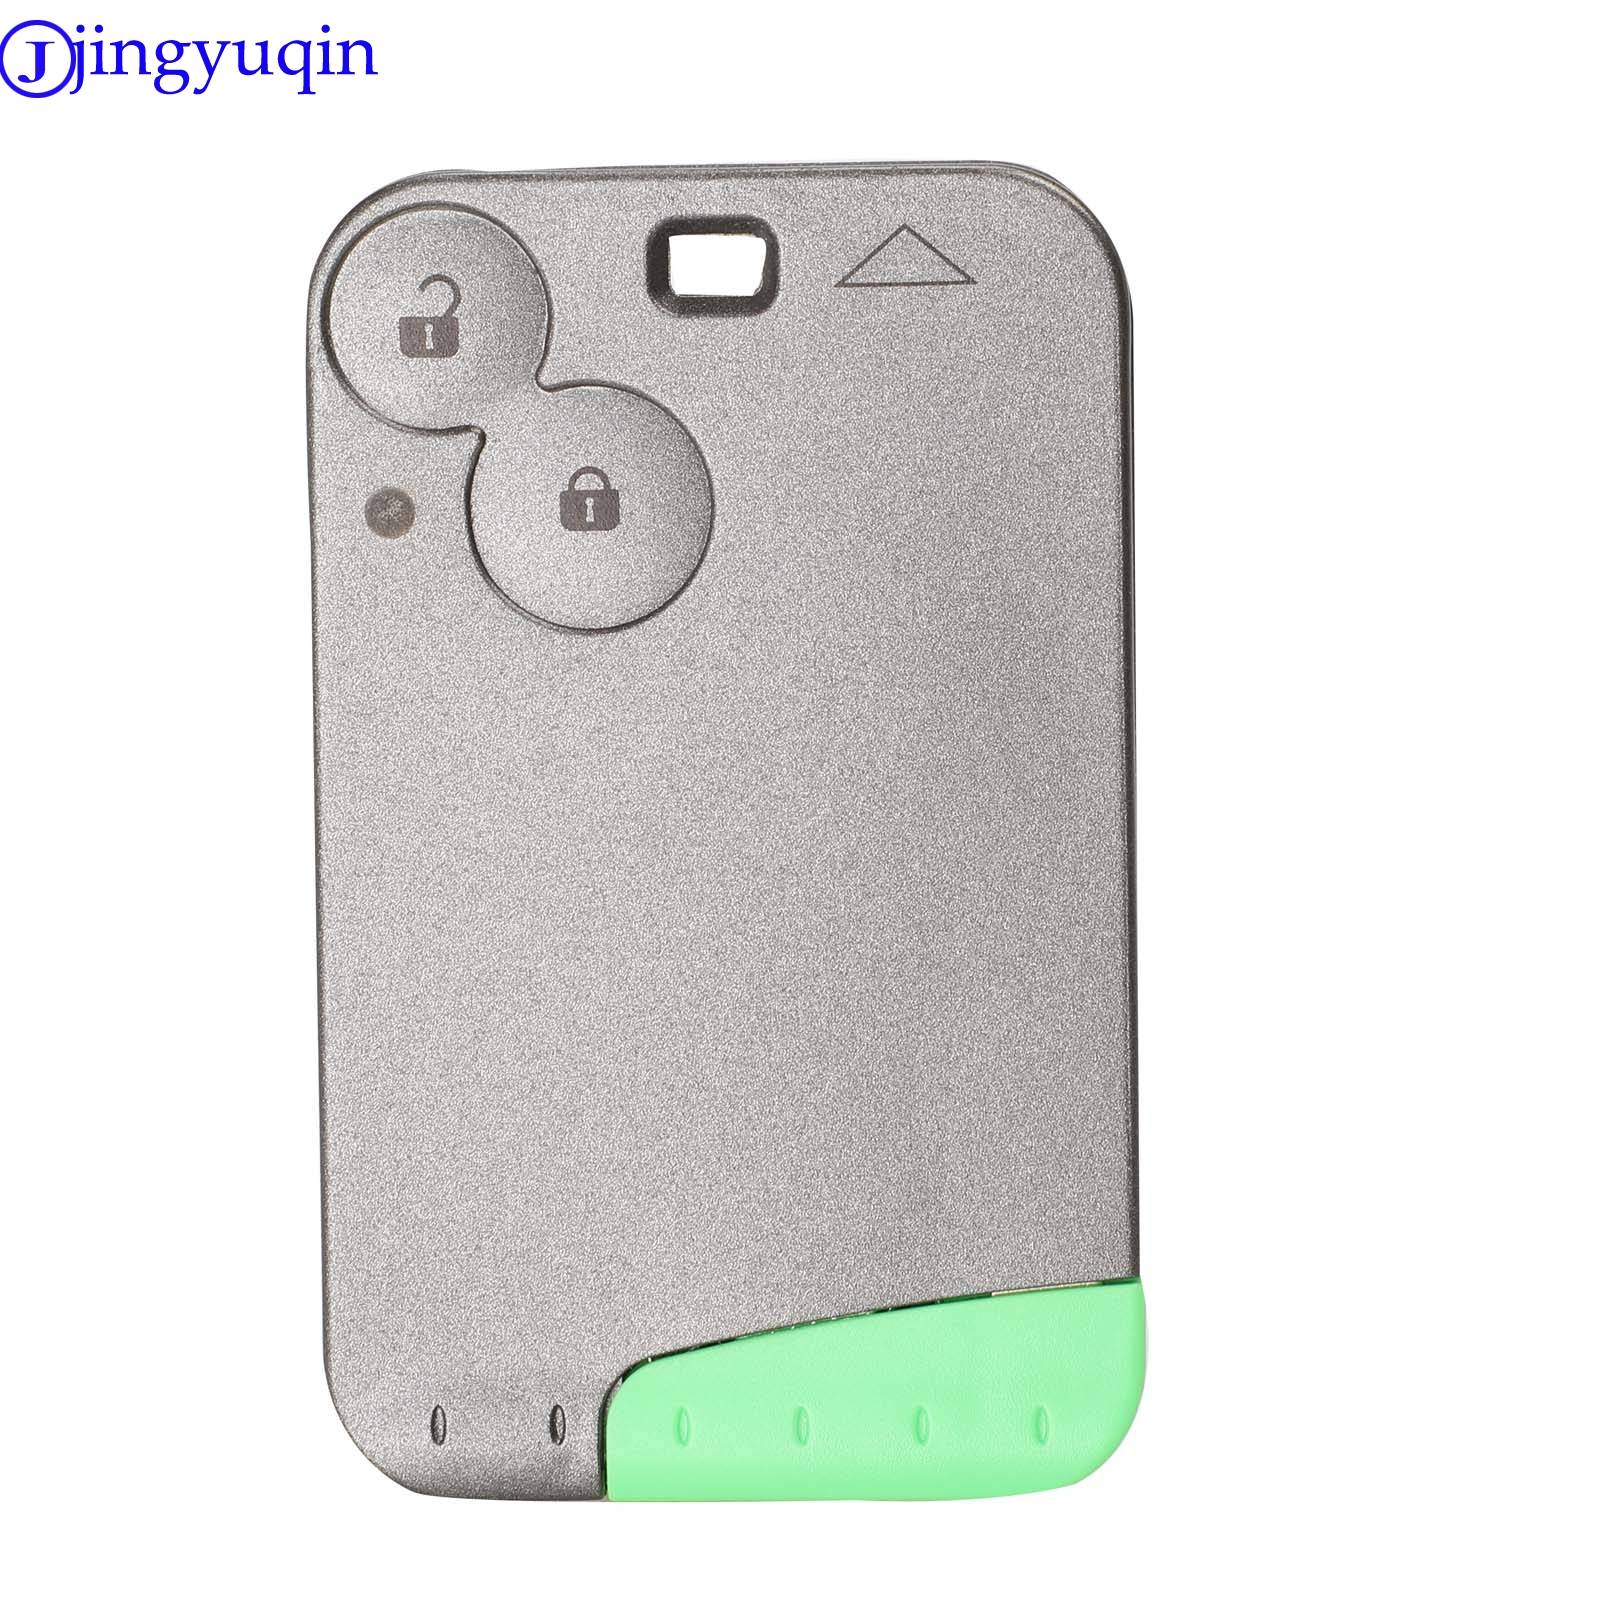 Image 3 - jingyuqin 433 MHz Pcf7947 Chip 2 Buttons Remote Car Key Card Shell Case With Blade For Renault Laguna with Uncut Key Blade-in Car Key from Automobiles & Motorcycles